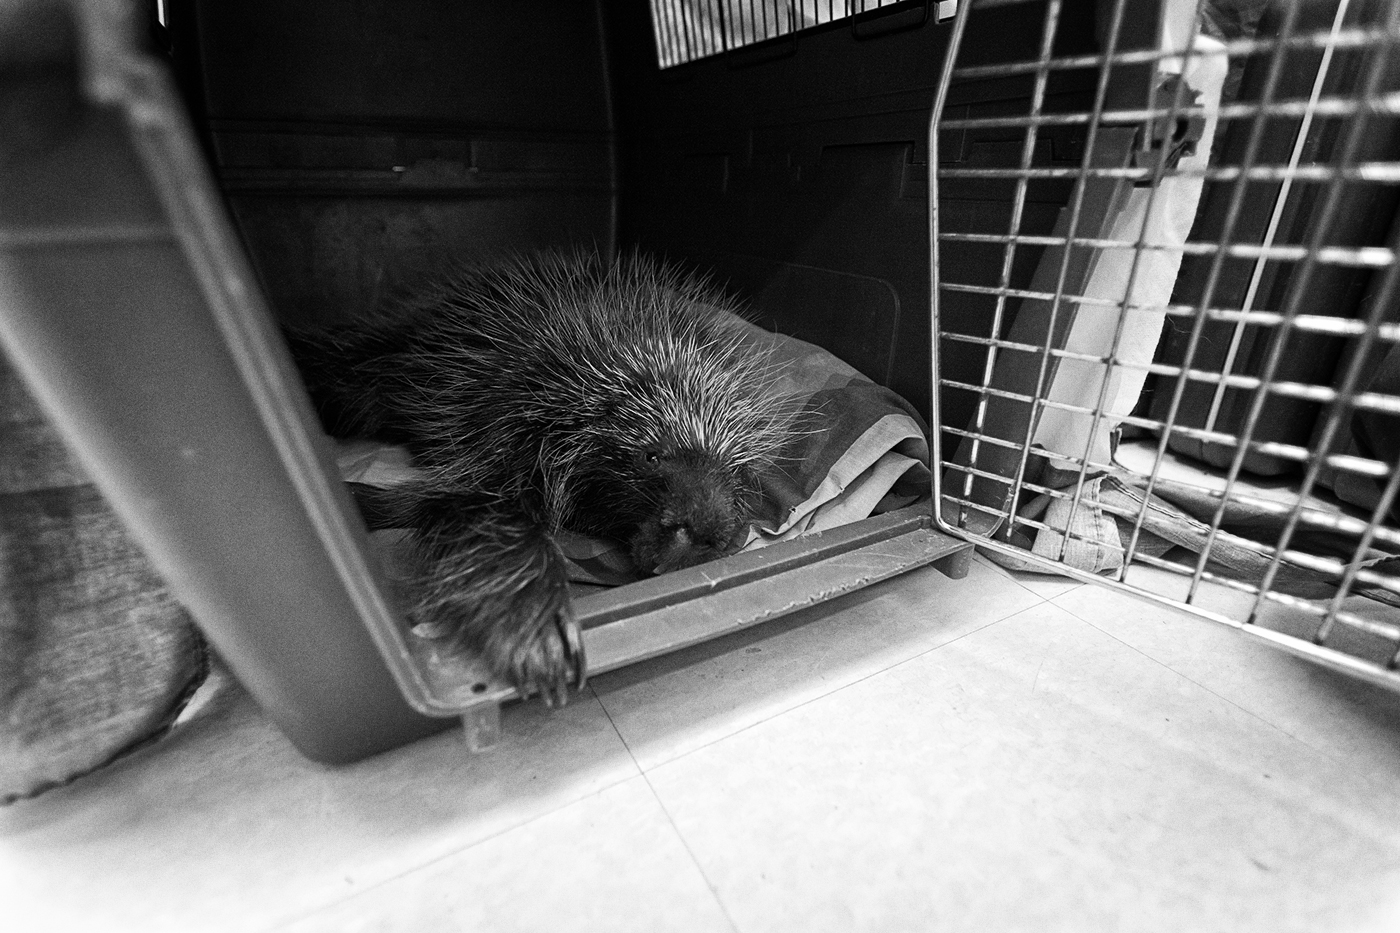 Porcupine in a crate at the Toronto Wildlife Centre